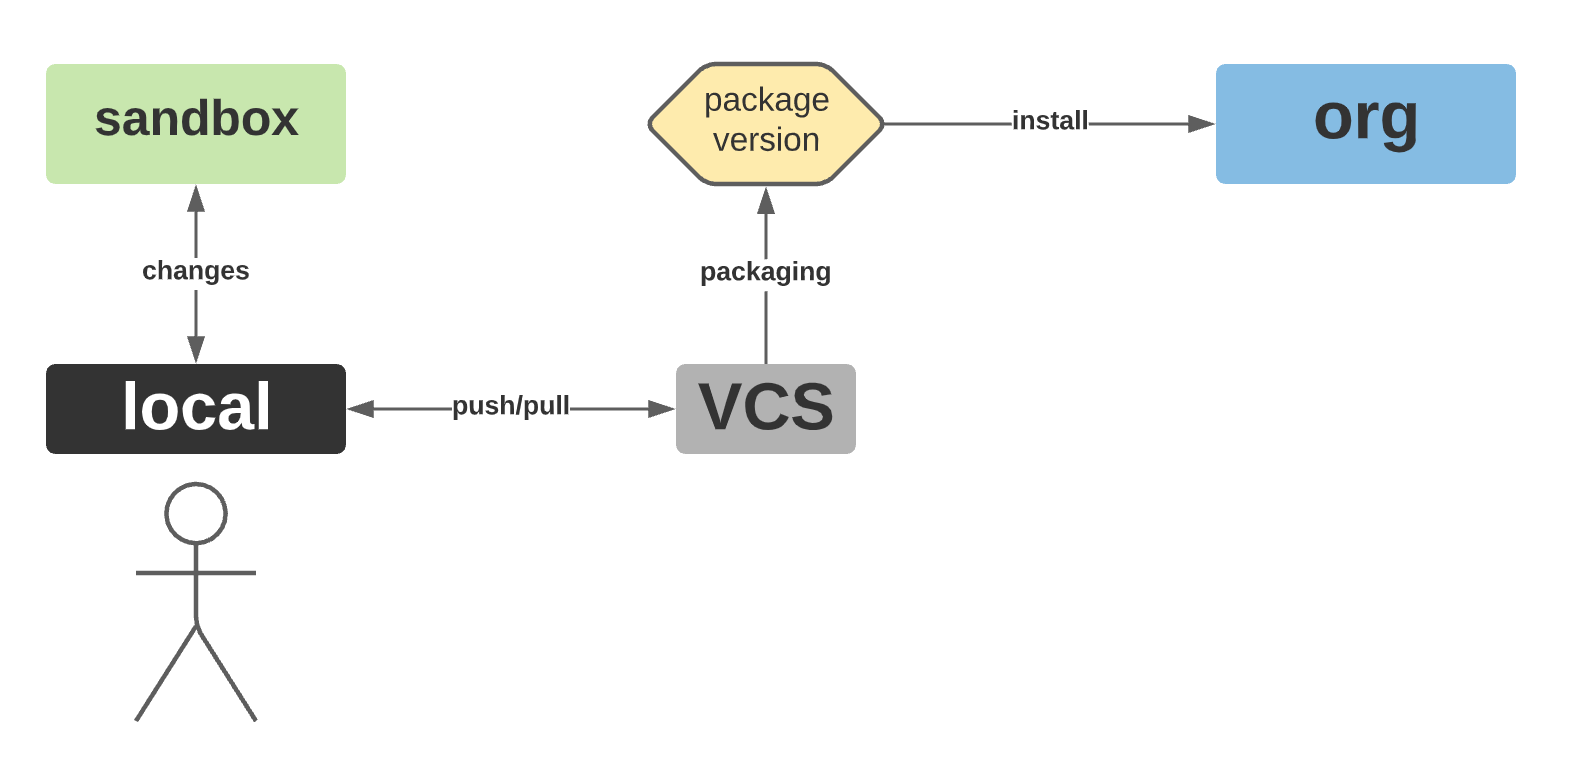 Image showing development flow with org-dependent packages.